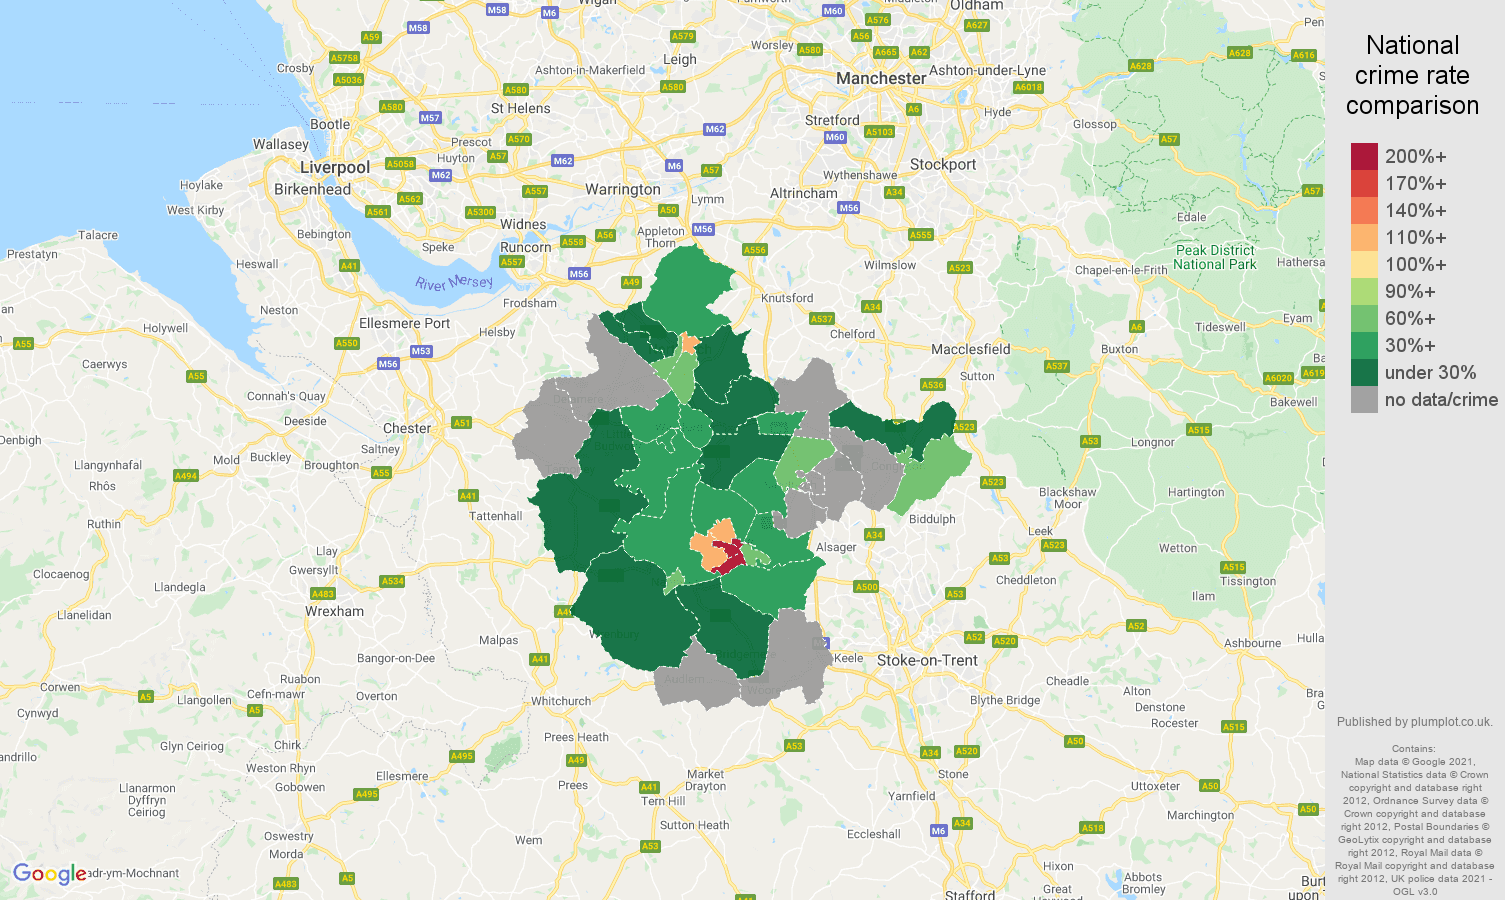 Crewe bicycle theft crime rate comparison map